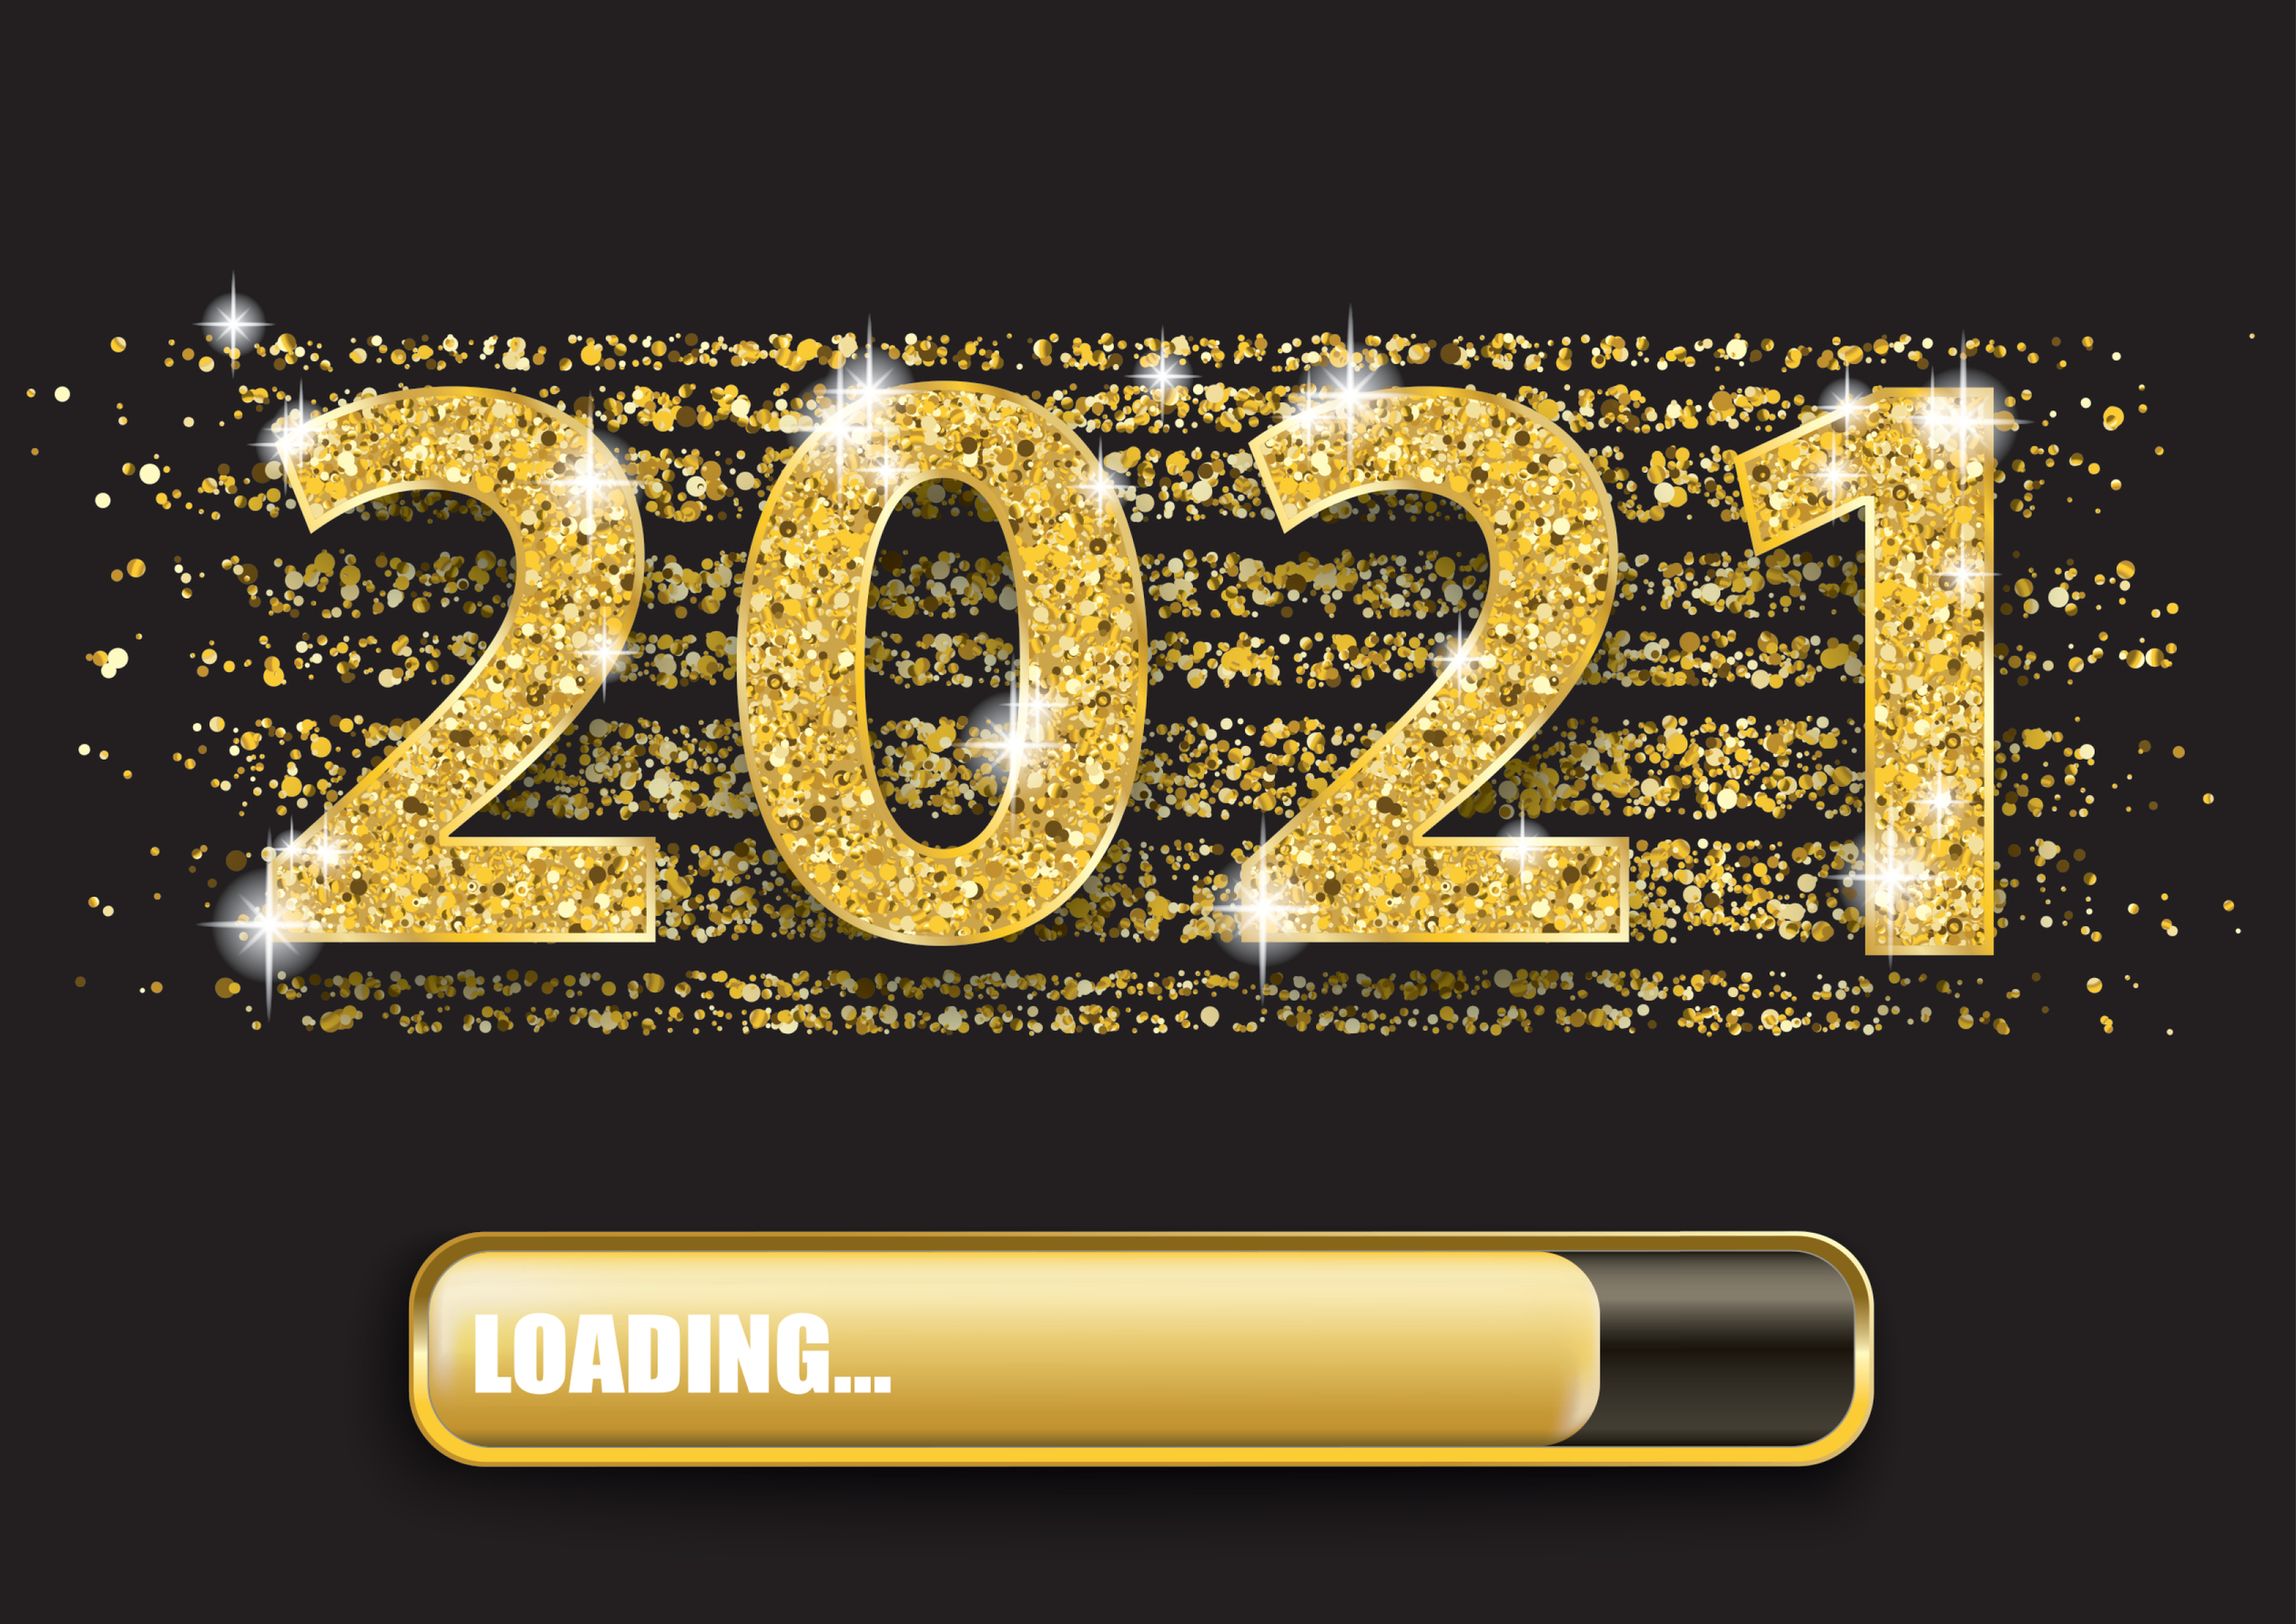 Silvester Lotto Baden-WГјrttemberg 2021